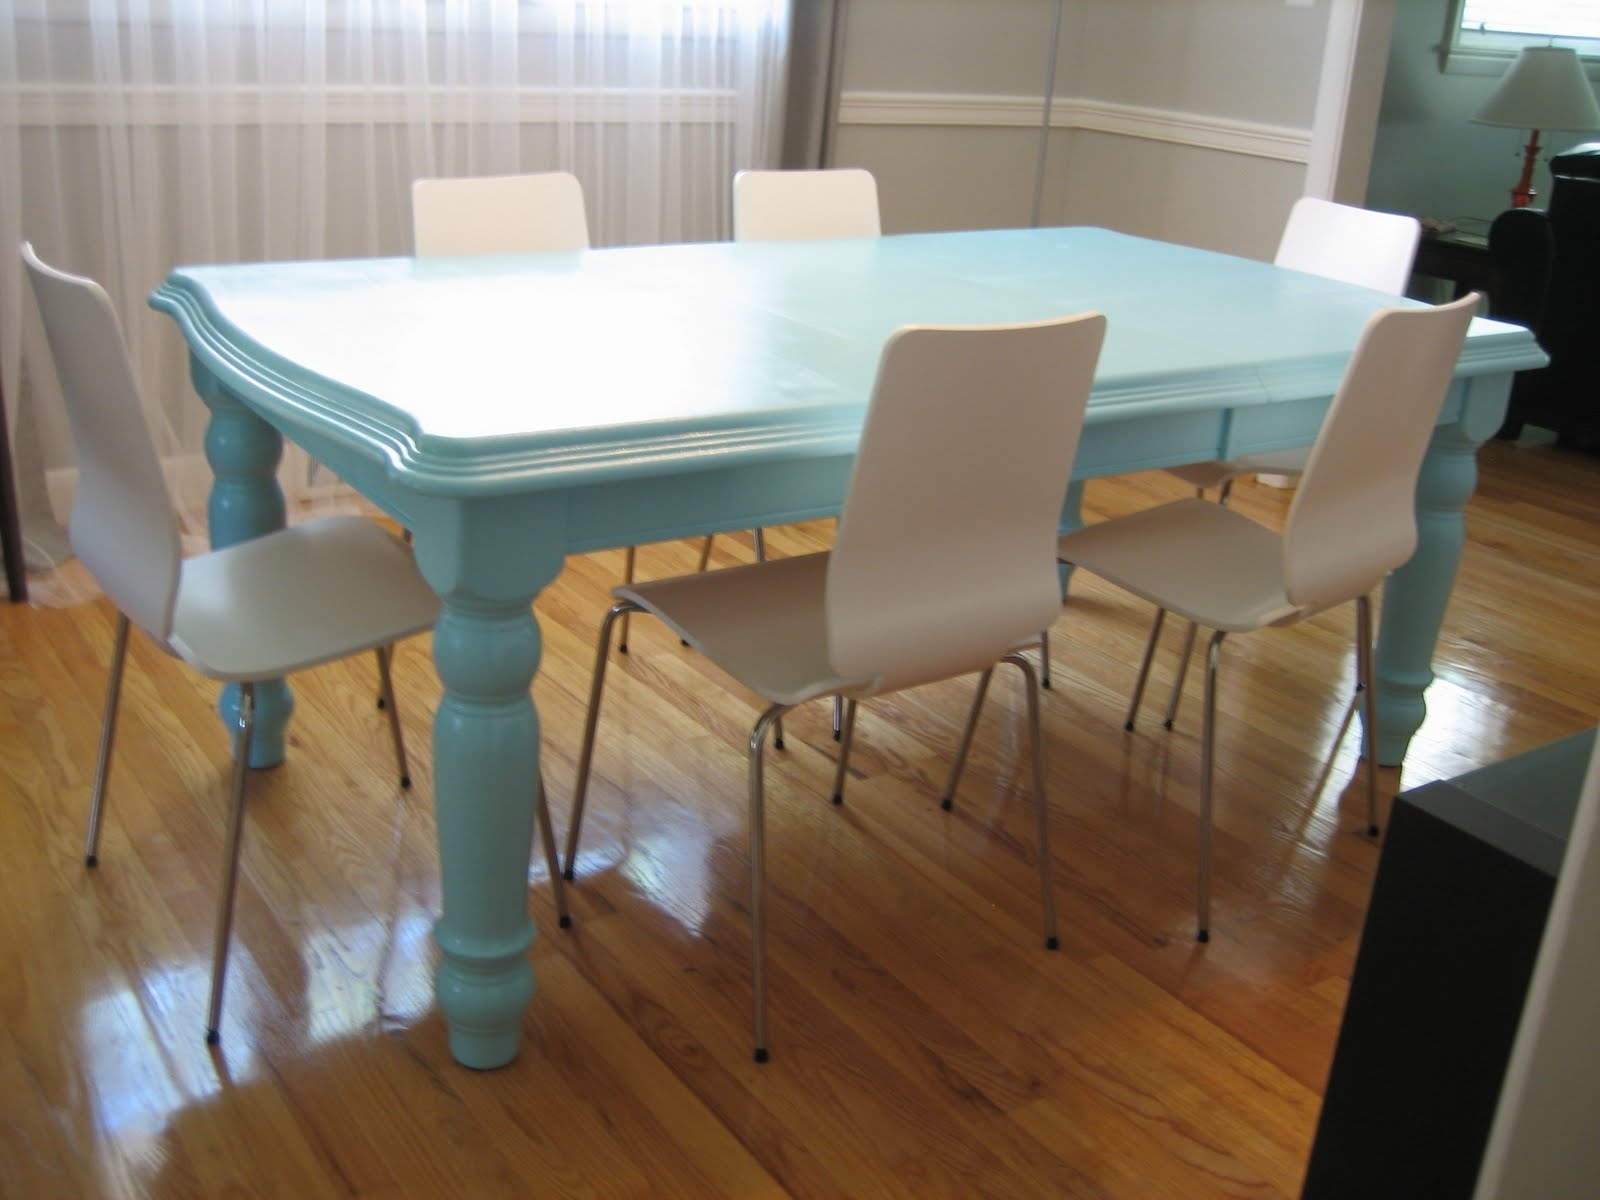 Durham Salad Days: Blue Dining Tabledone & Done Intended For Most Current Blue Dining Tables (Gallery 11 of 25)